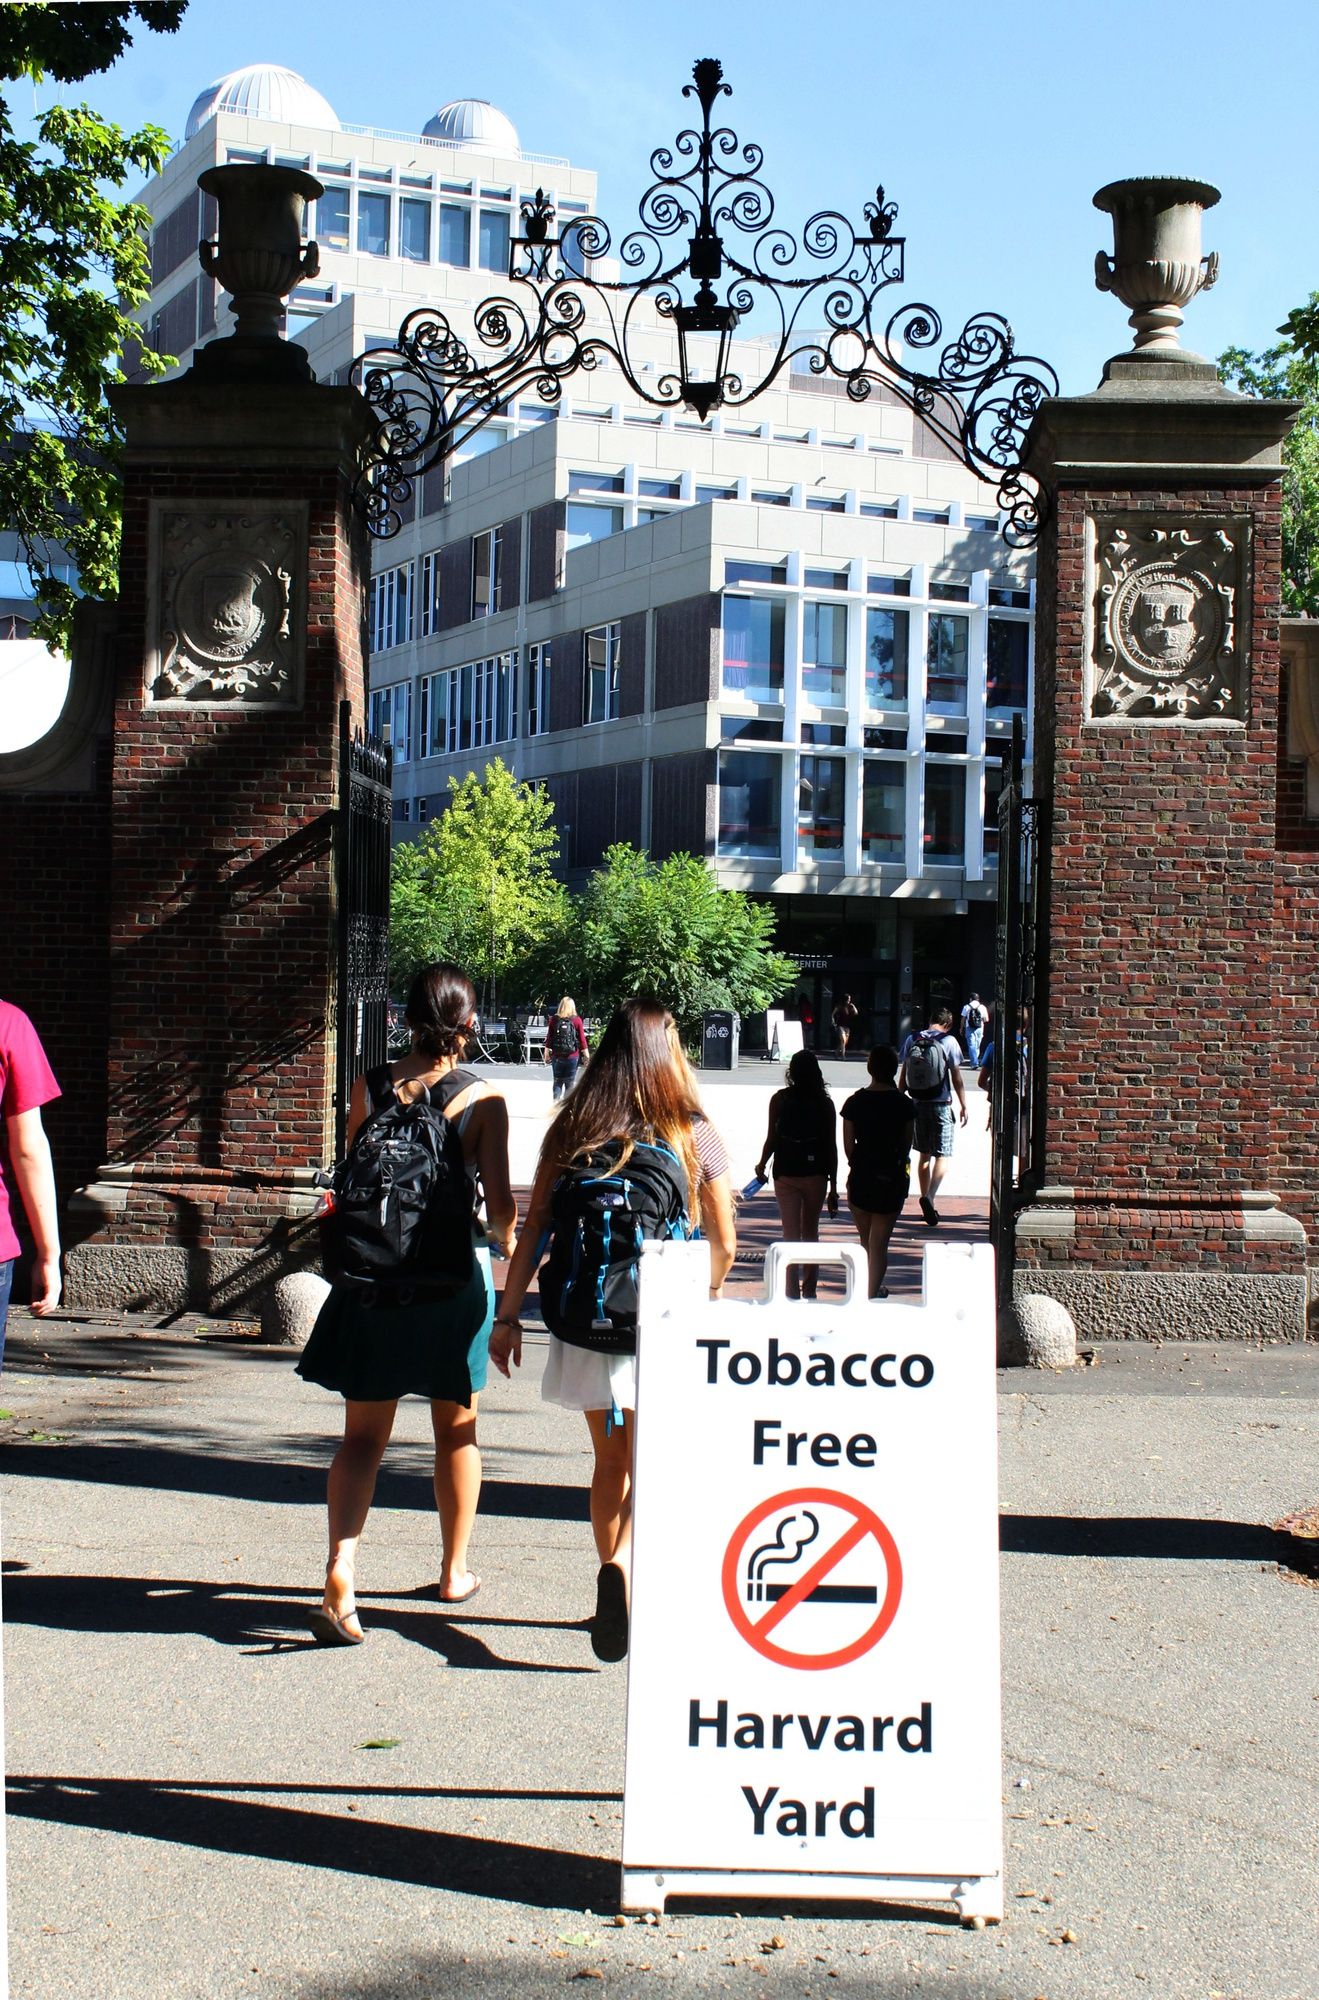 As of Aug. 15, smoking has been banned in Harvard Yard.